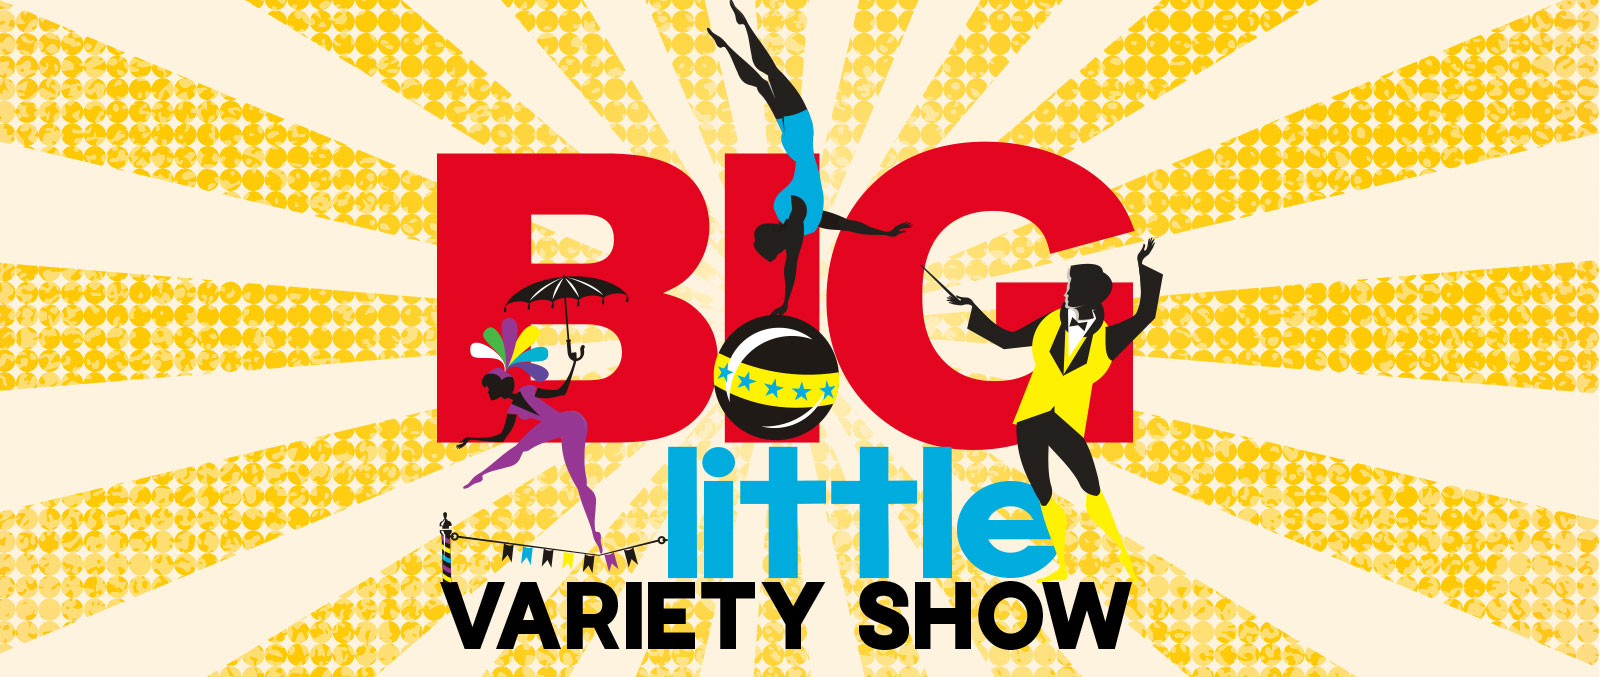 Big Little Variety Show Brings Family Friendly Fun